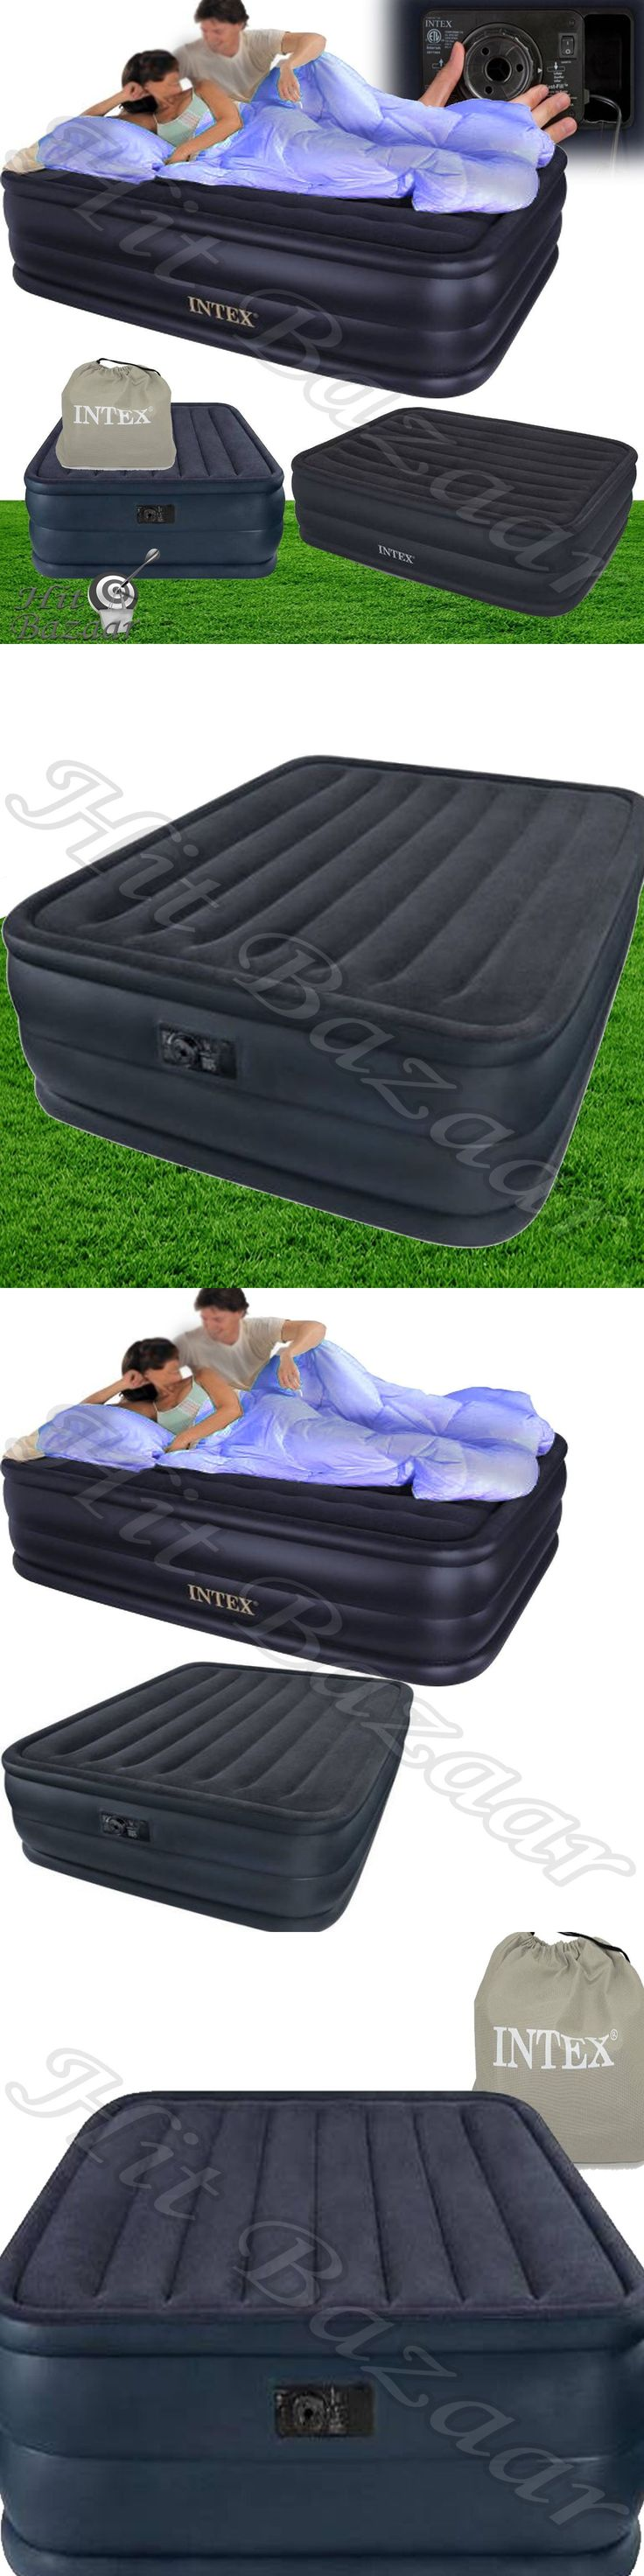 Inflatable Mattresses Airbeds 131598: Queen Raised Air Mattress Bed Inflatable  Airbed Blow Up Electric Pump